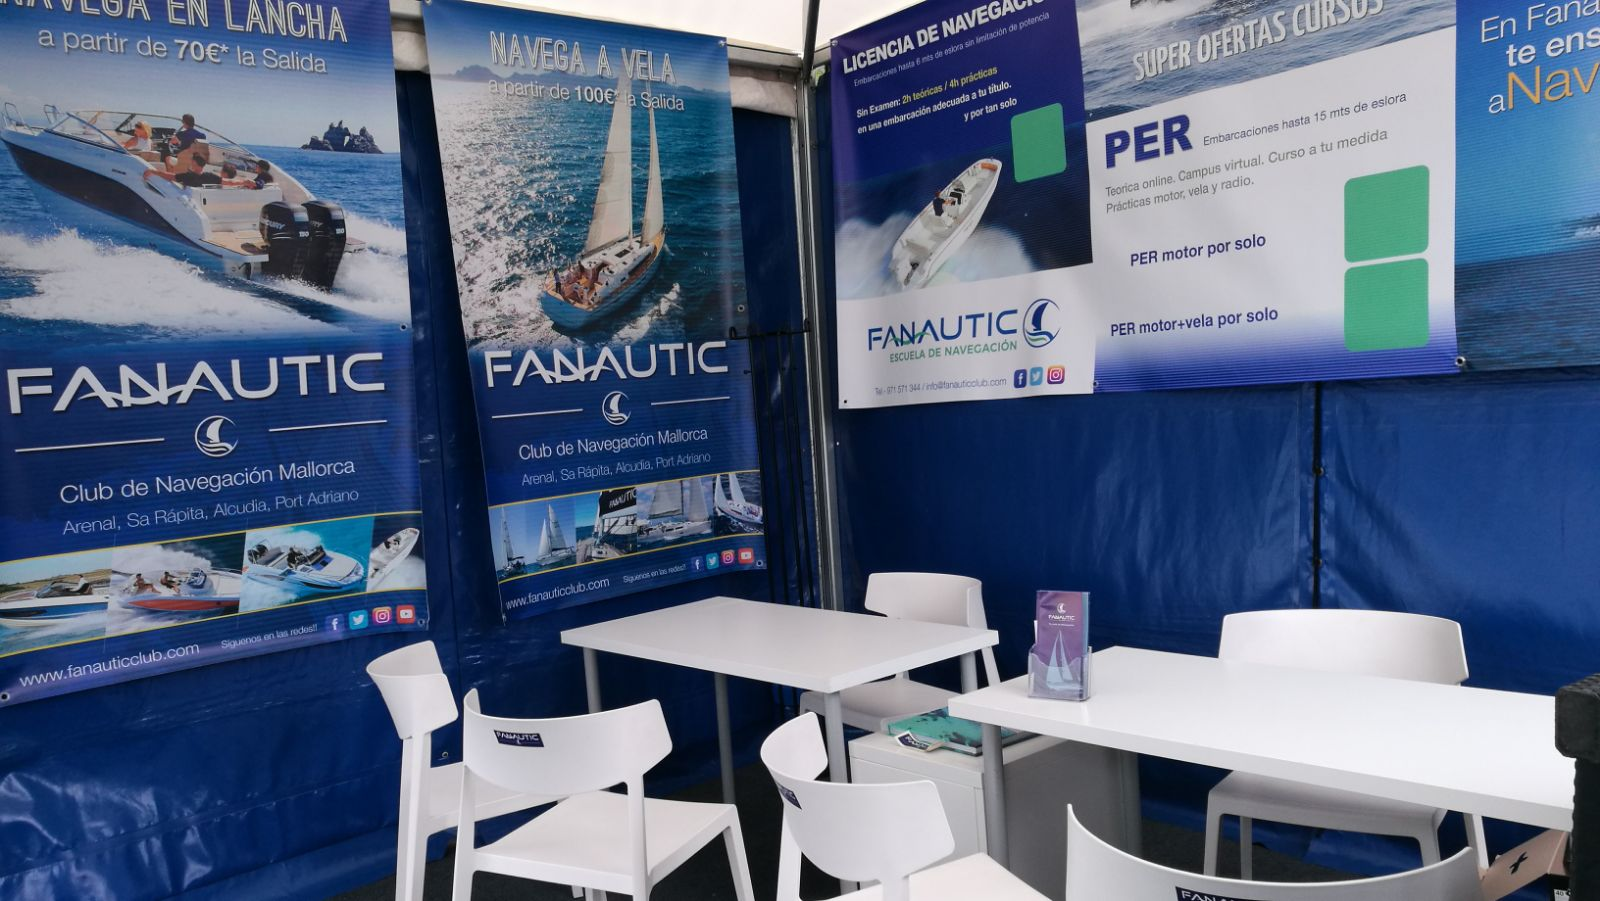 35TH PALMA INTERNATIONAL BOAT SHOW- Fanautic